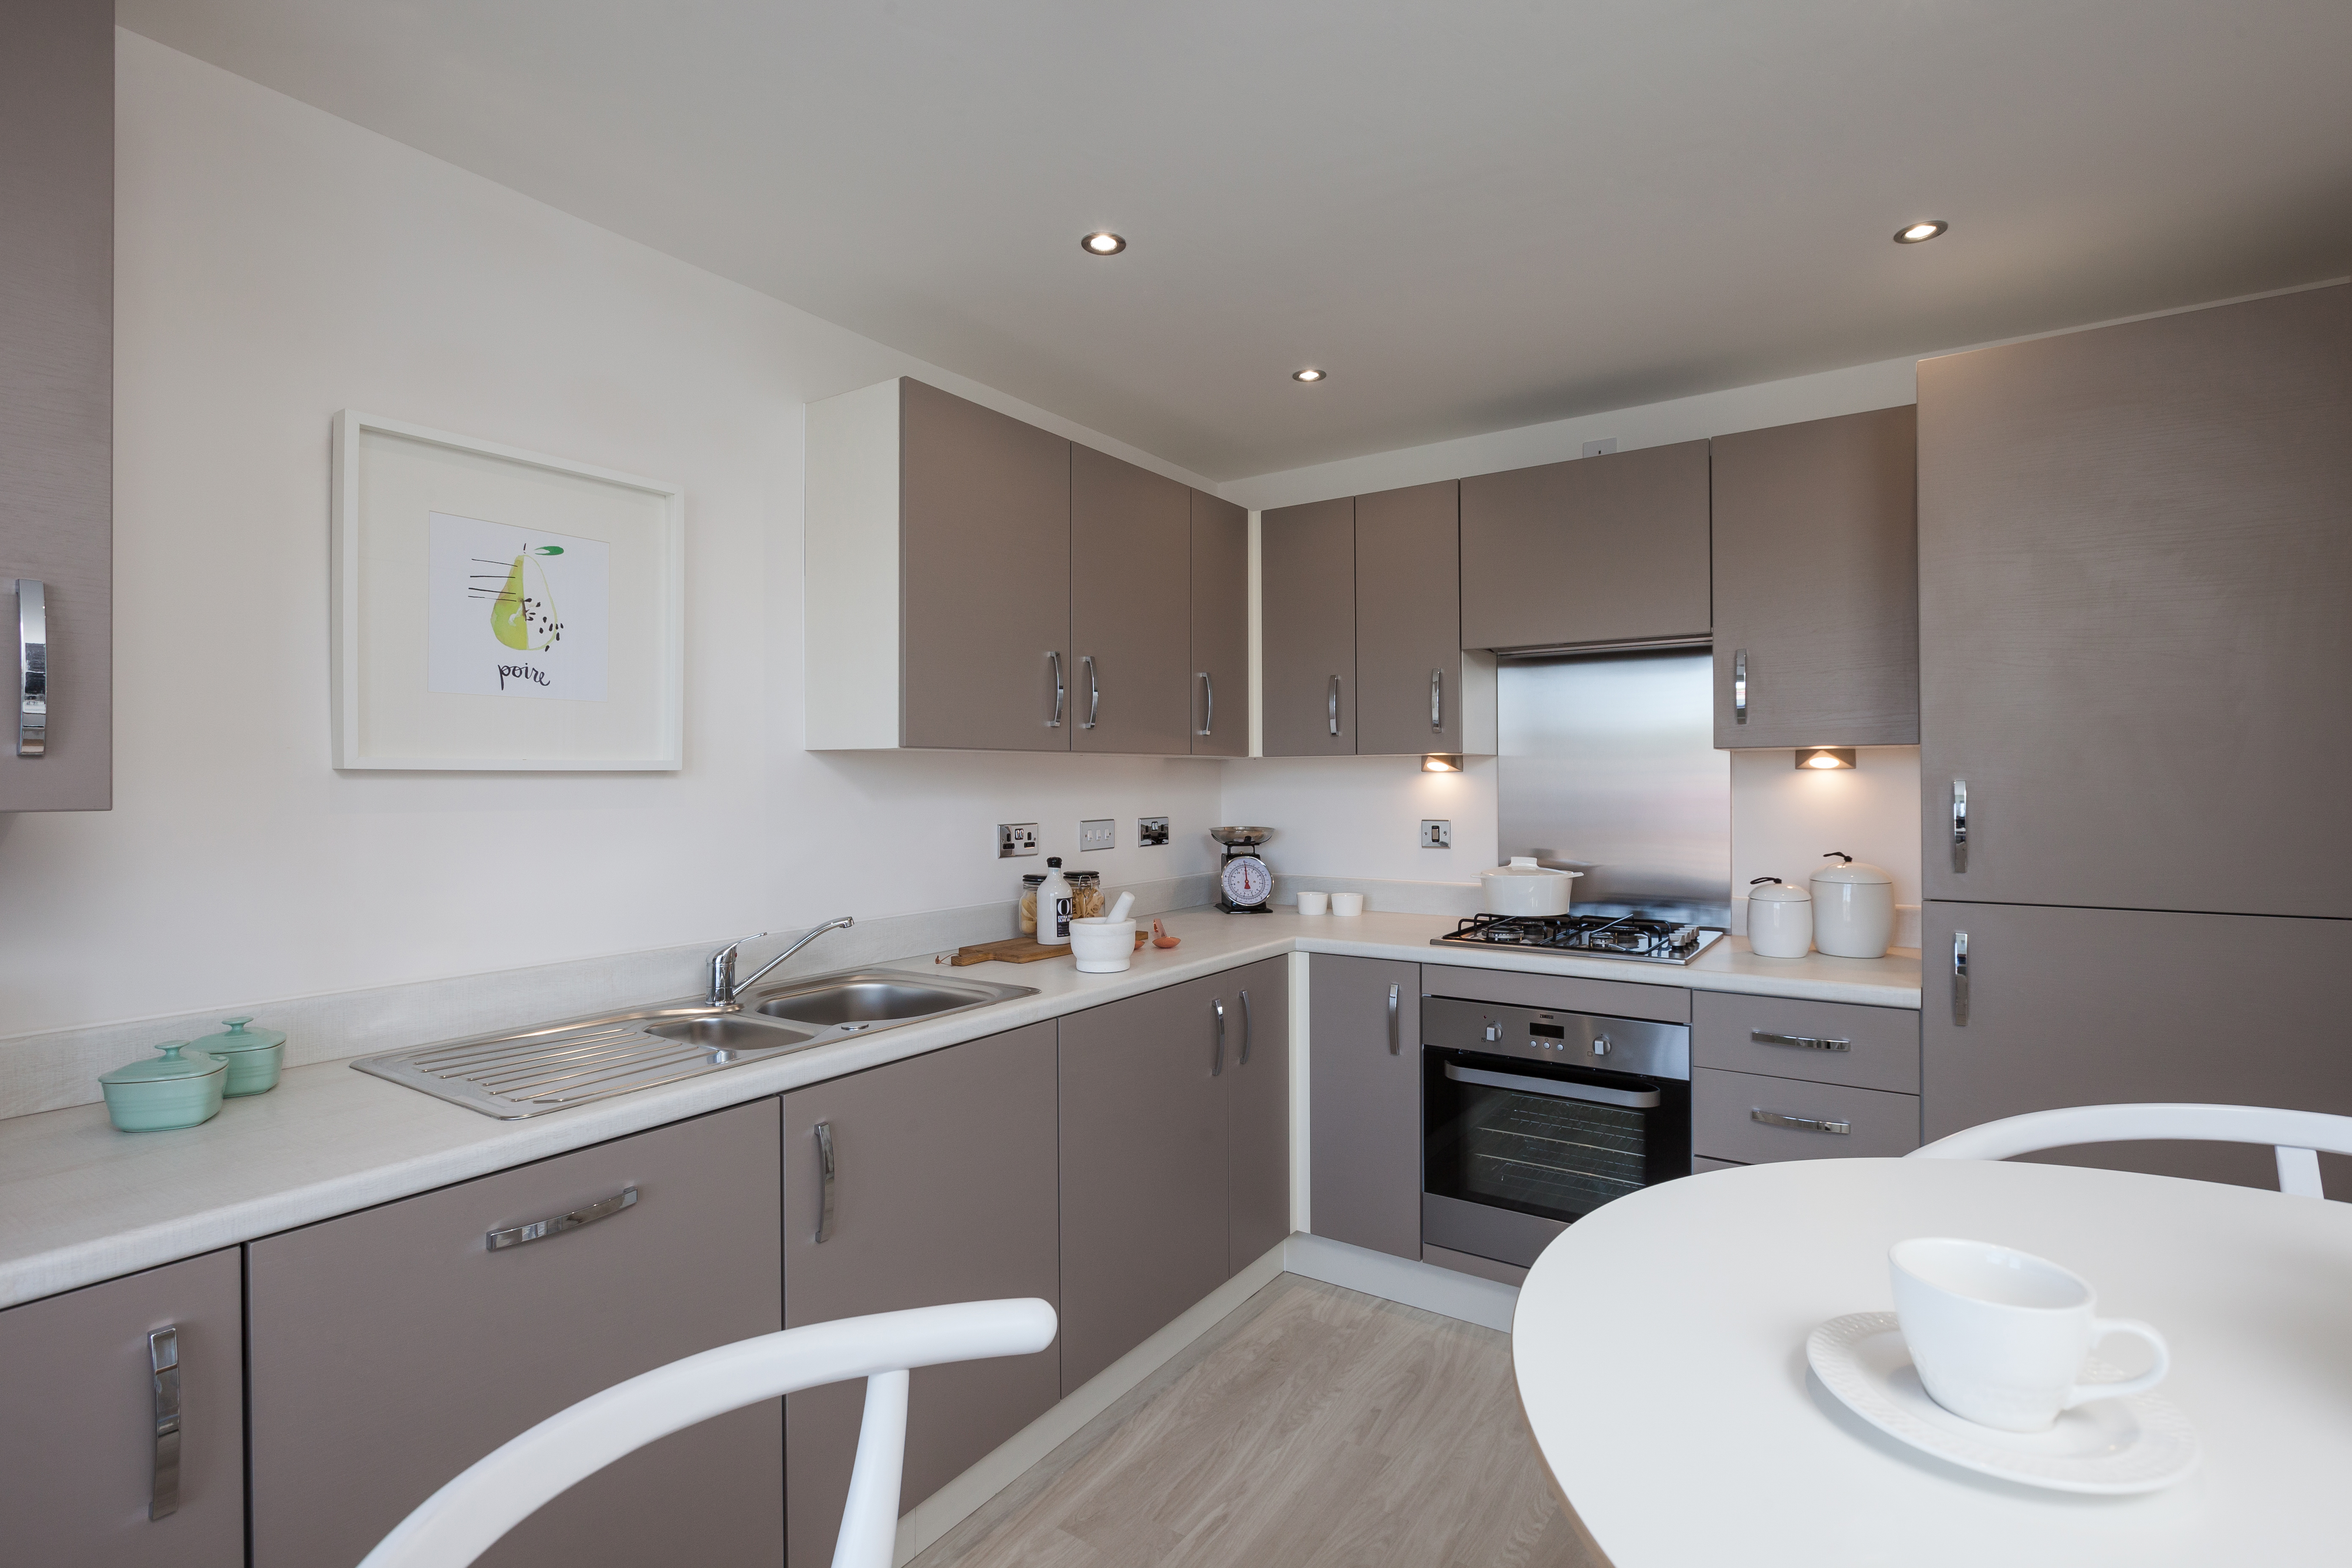 TW NM_Pastures New_Flatford_Kitchen 2